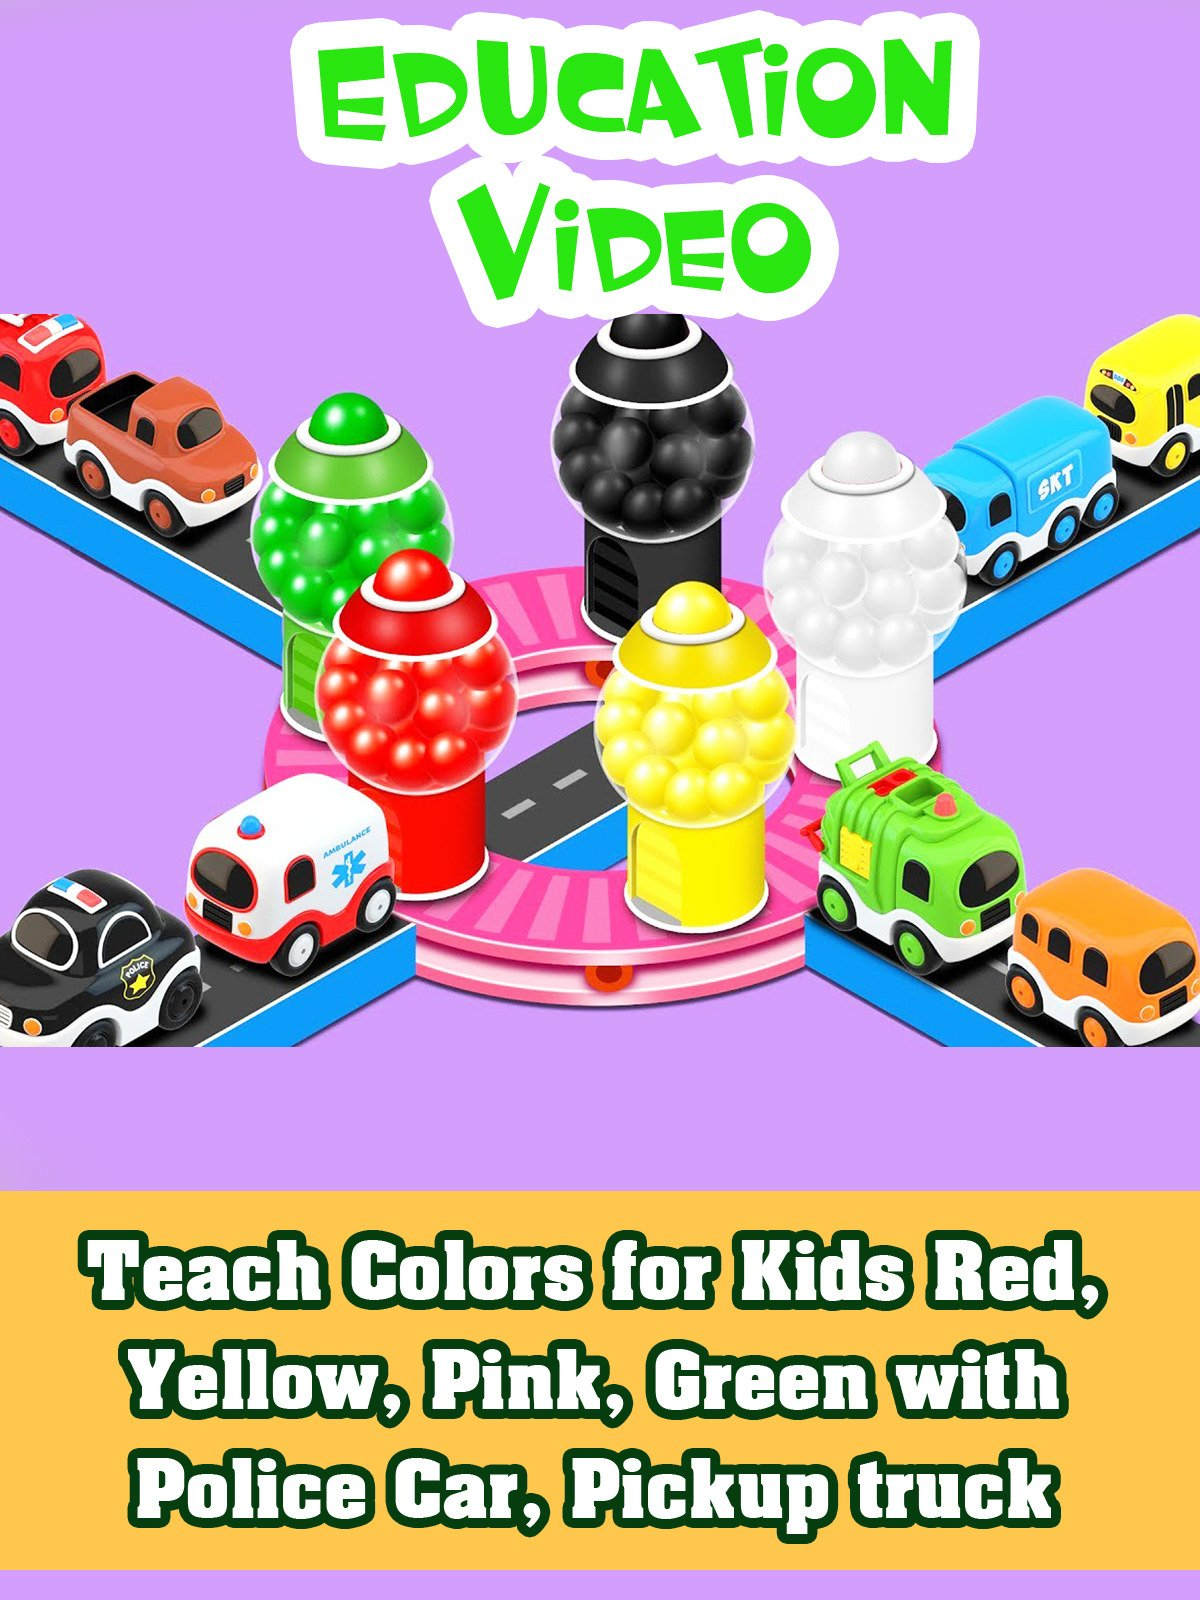 Teach Colors for Kids Red, Yellow, Pink, Green with Police Car, Pickup truck